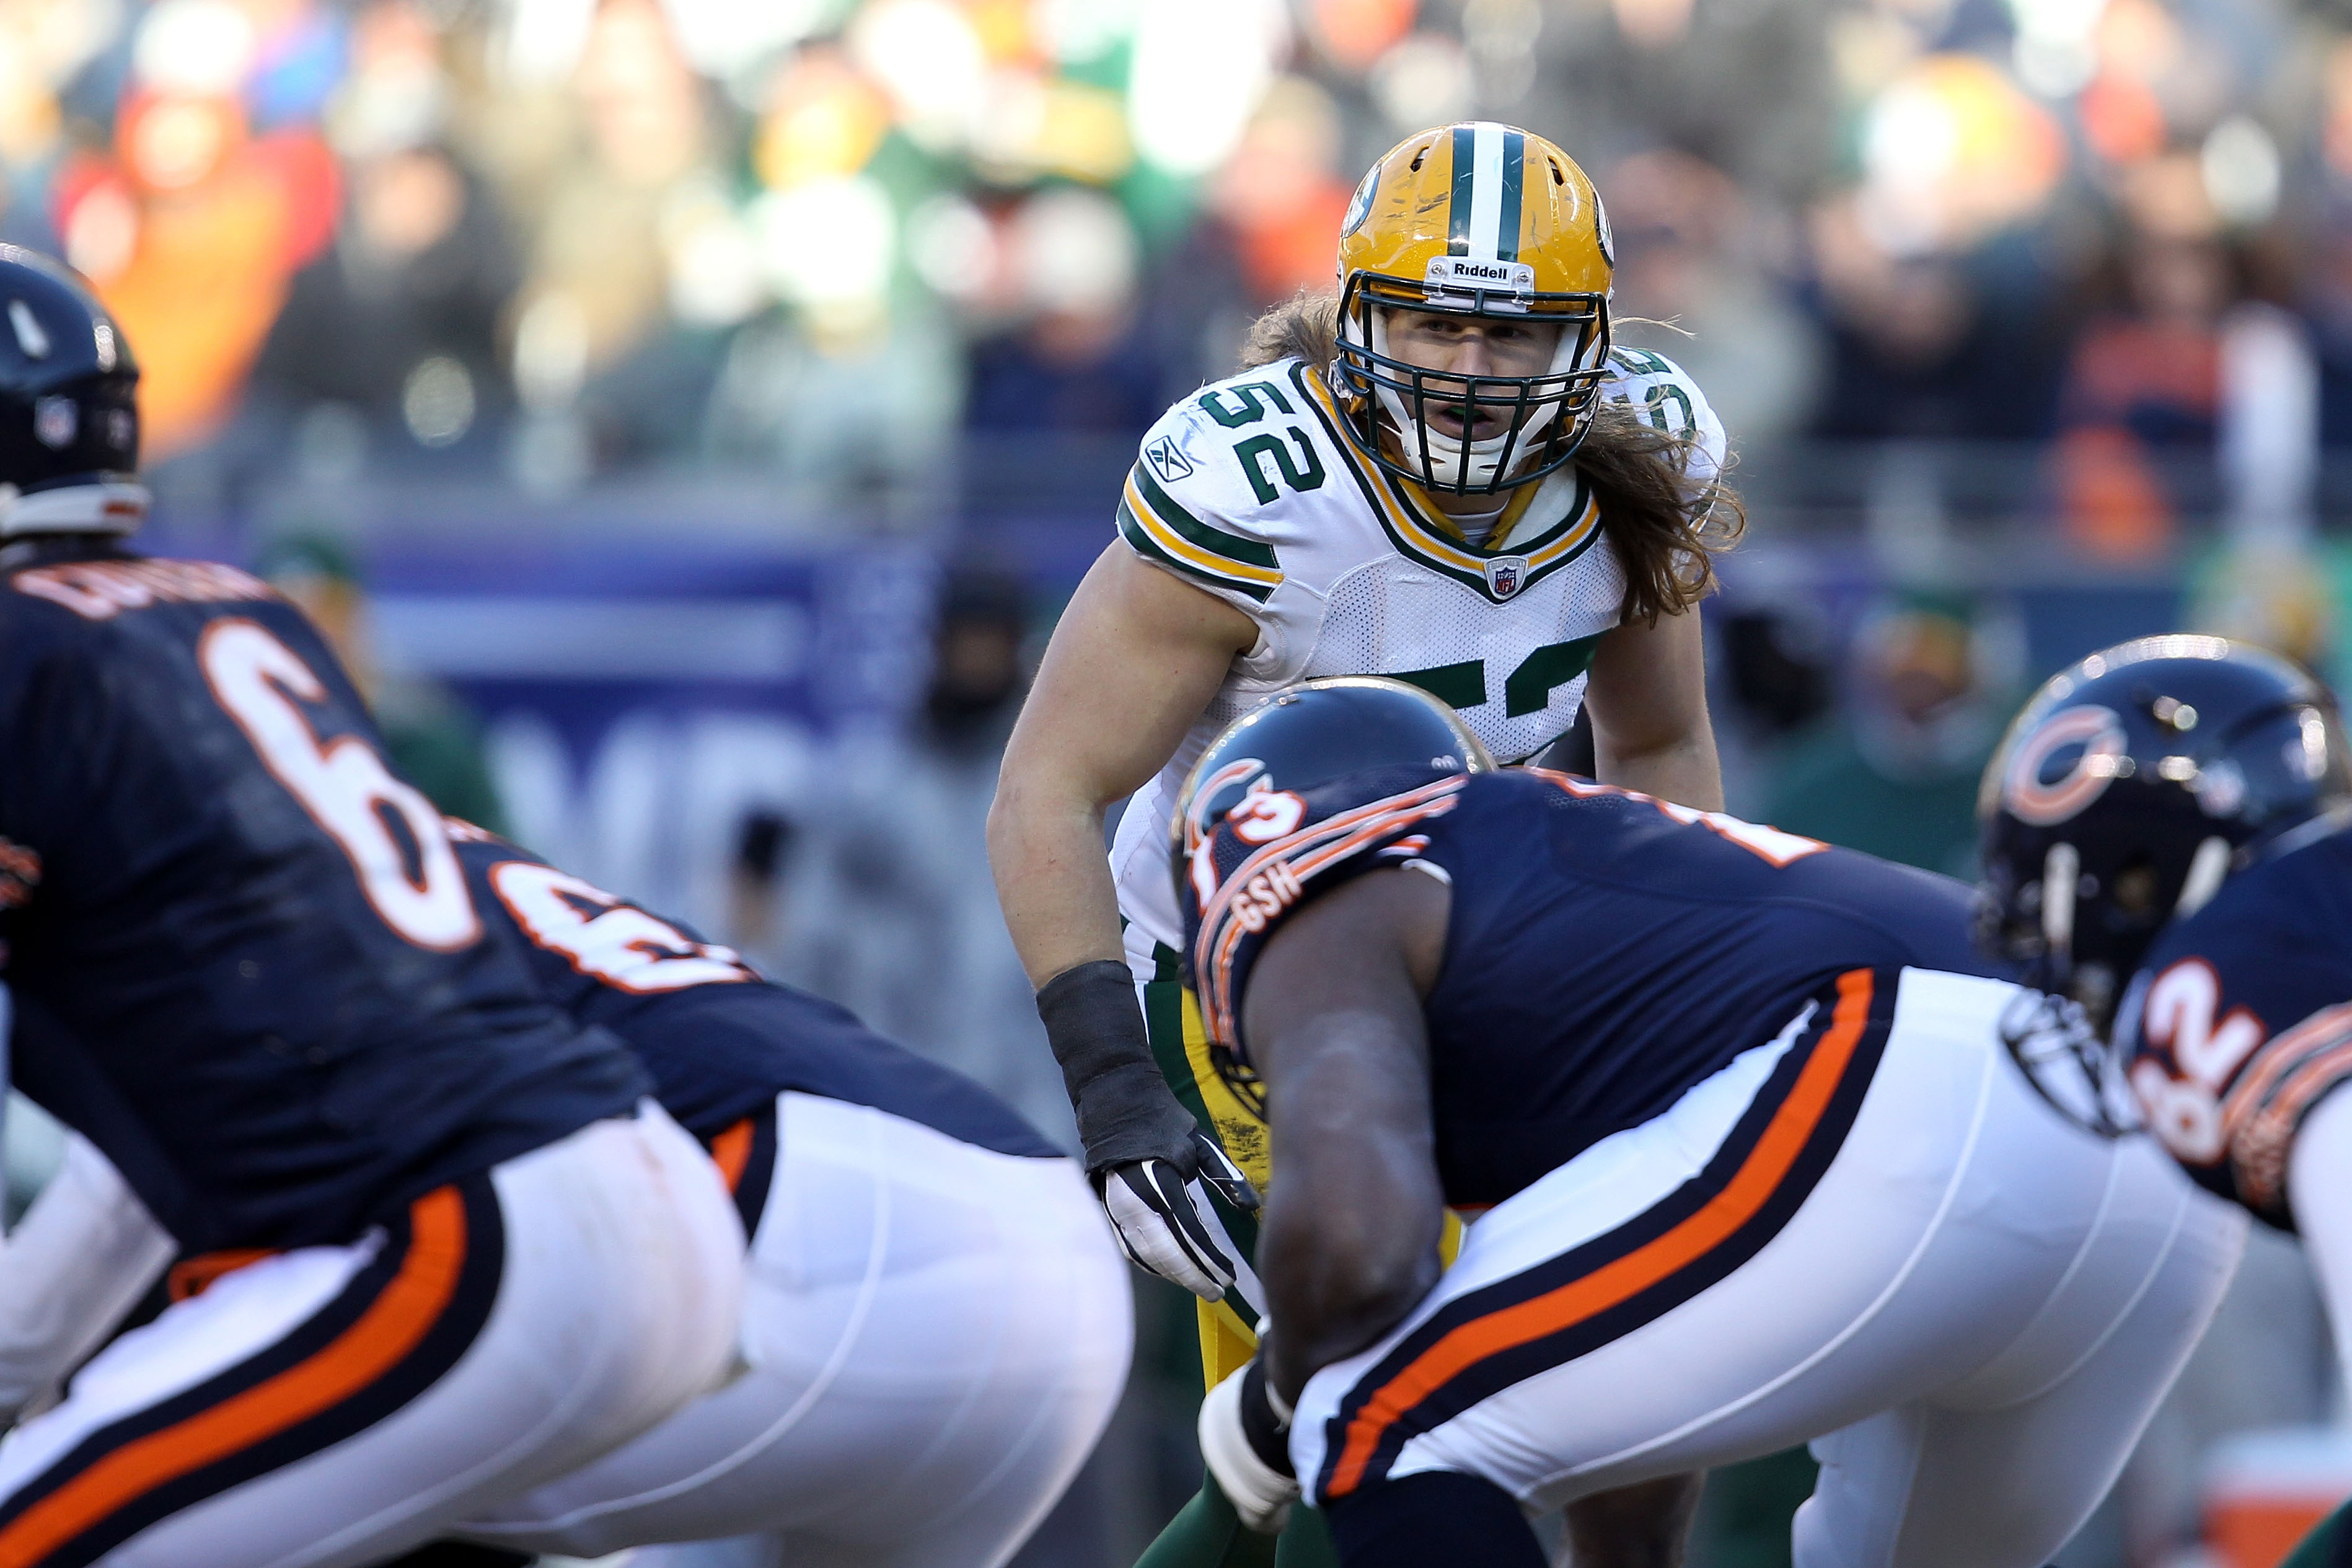 CHICAGO, IL - JANUARY 23:  Linebacker Clay Matthews #52 of the Green Bay Packers looks down the line over at quarterback Jay Cutler #6 of the Chicago Bears in the NFC Championship Game at Soldier Field on January 23, 2011 in Chicago, Illinois.  (Photo by